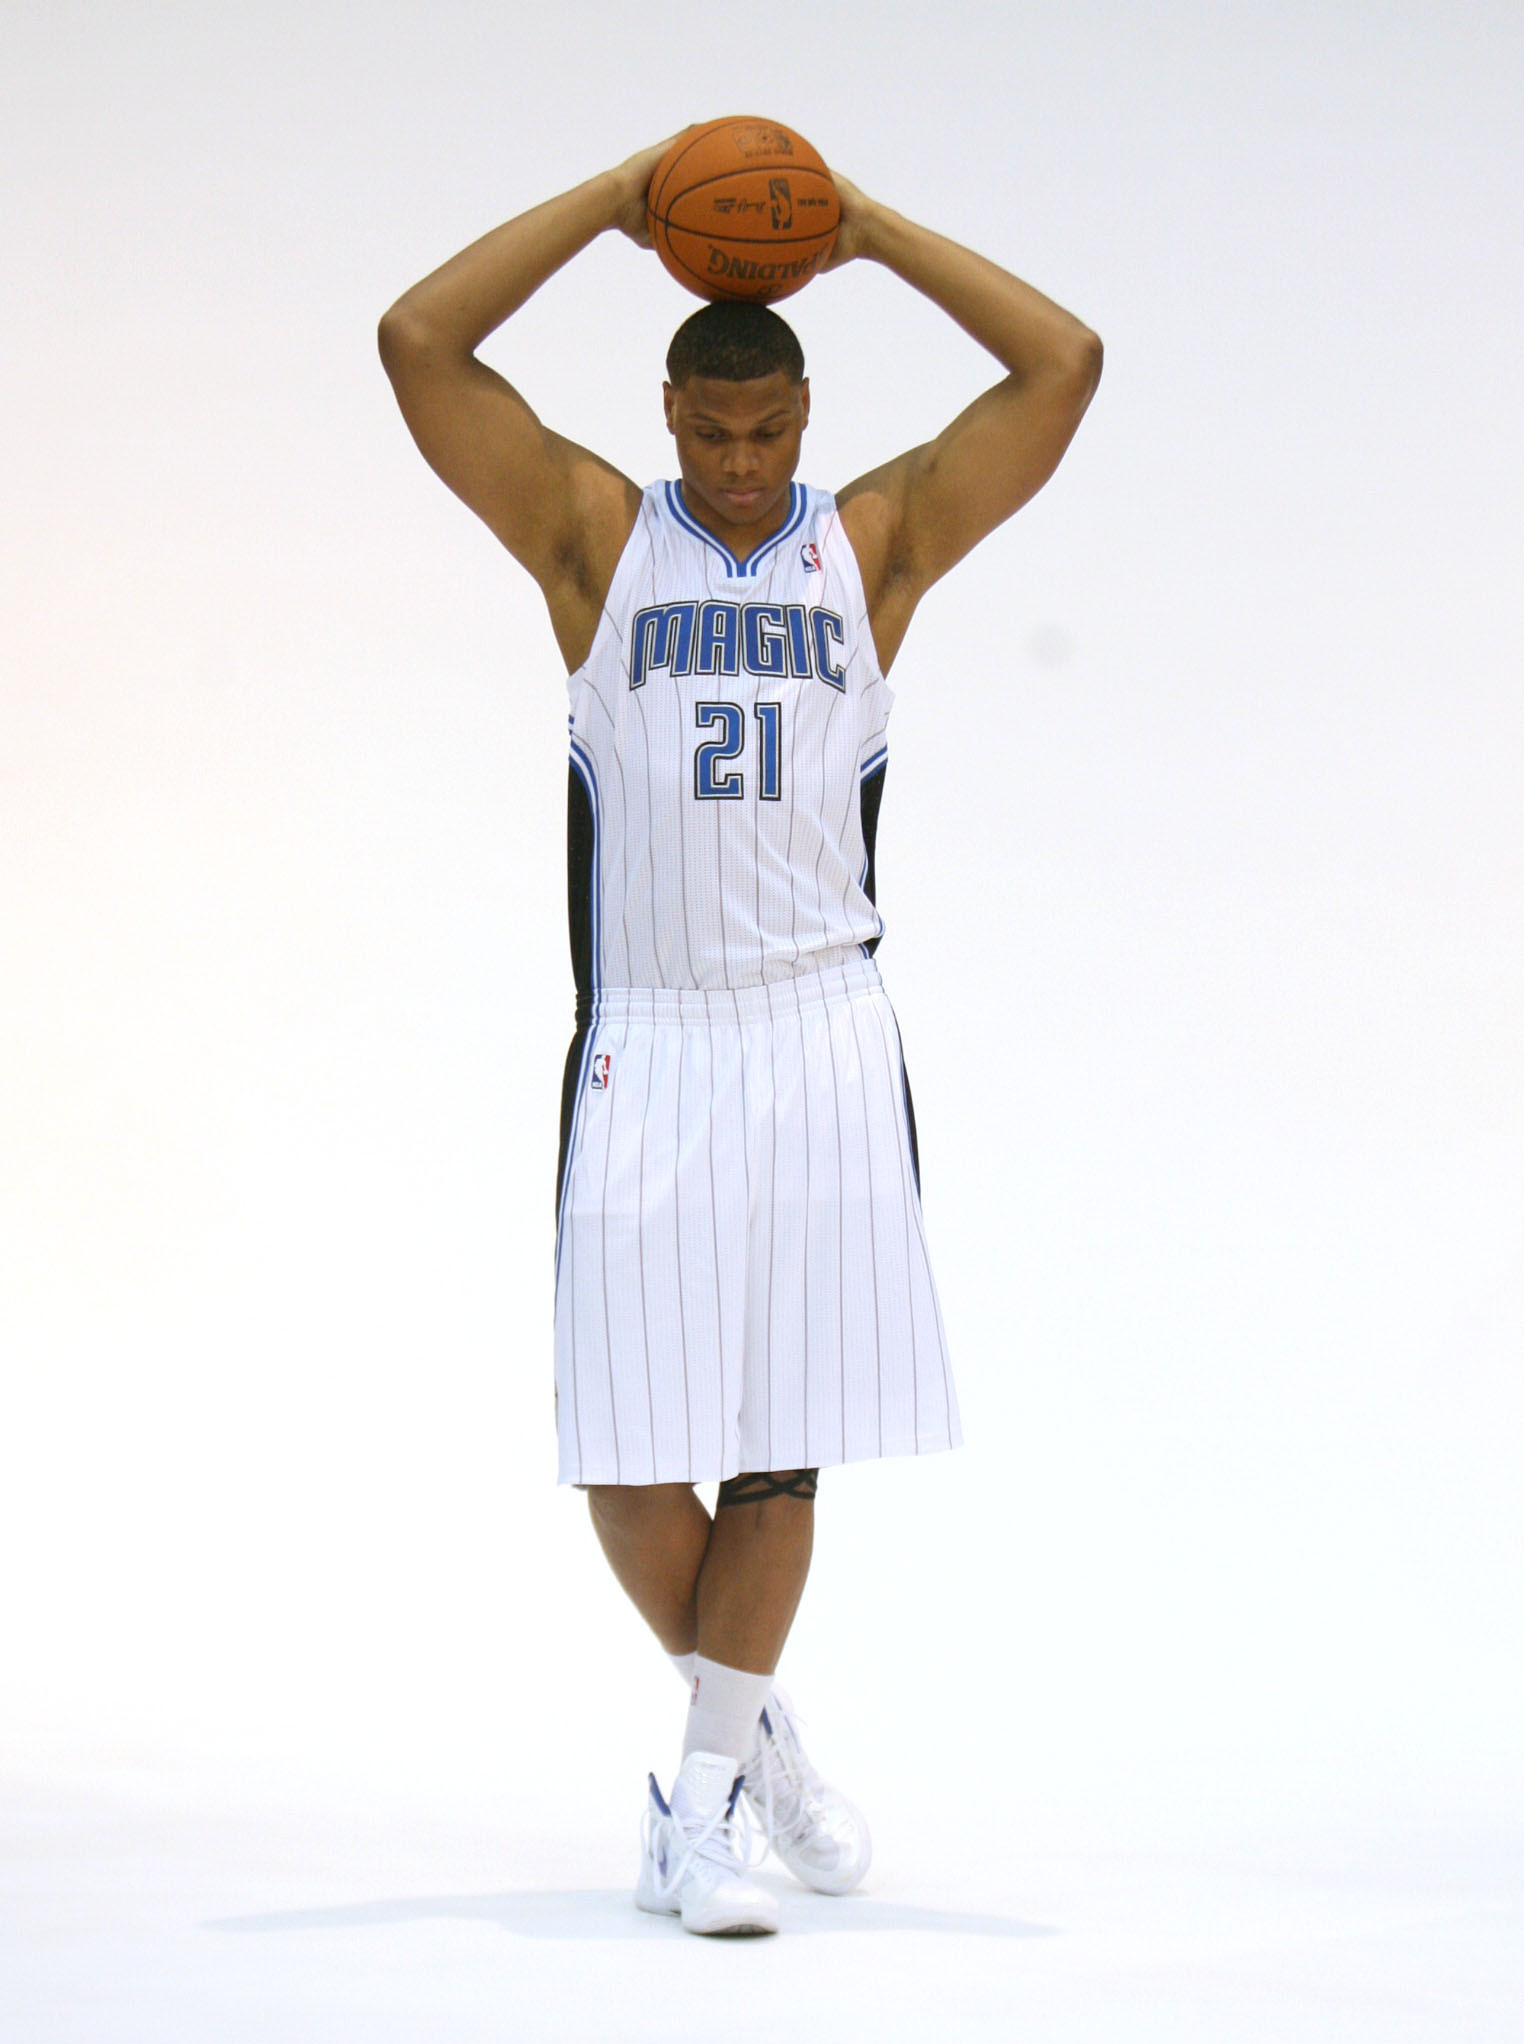 Orlando Magic center Daniel Orton at Orlando Magic Media Day at Amway Center in Orlando on Monday, Dec. 12, 2011.